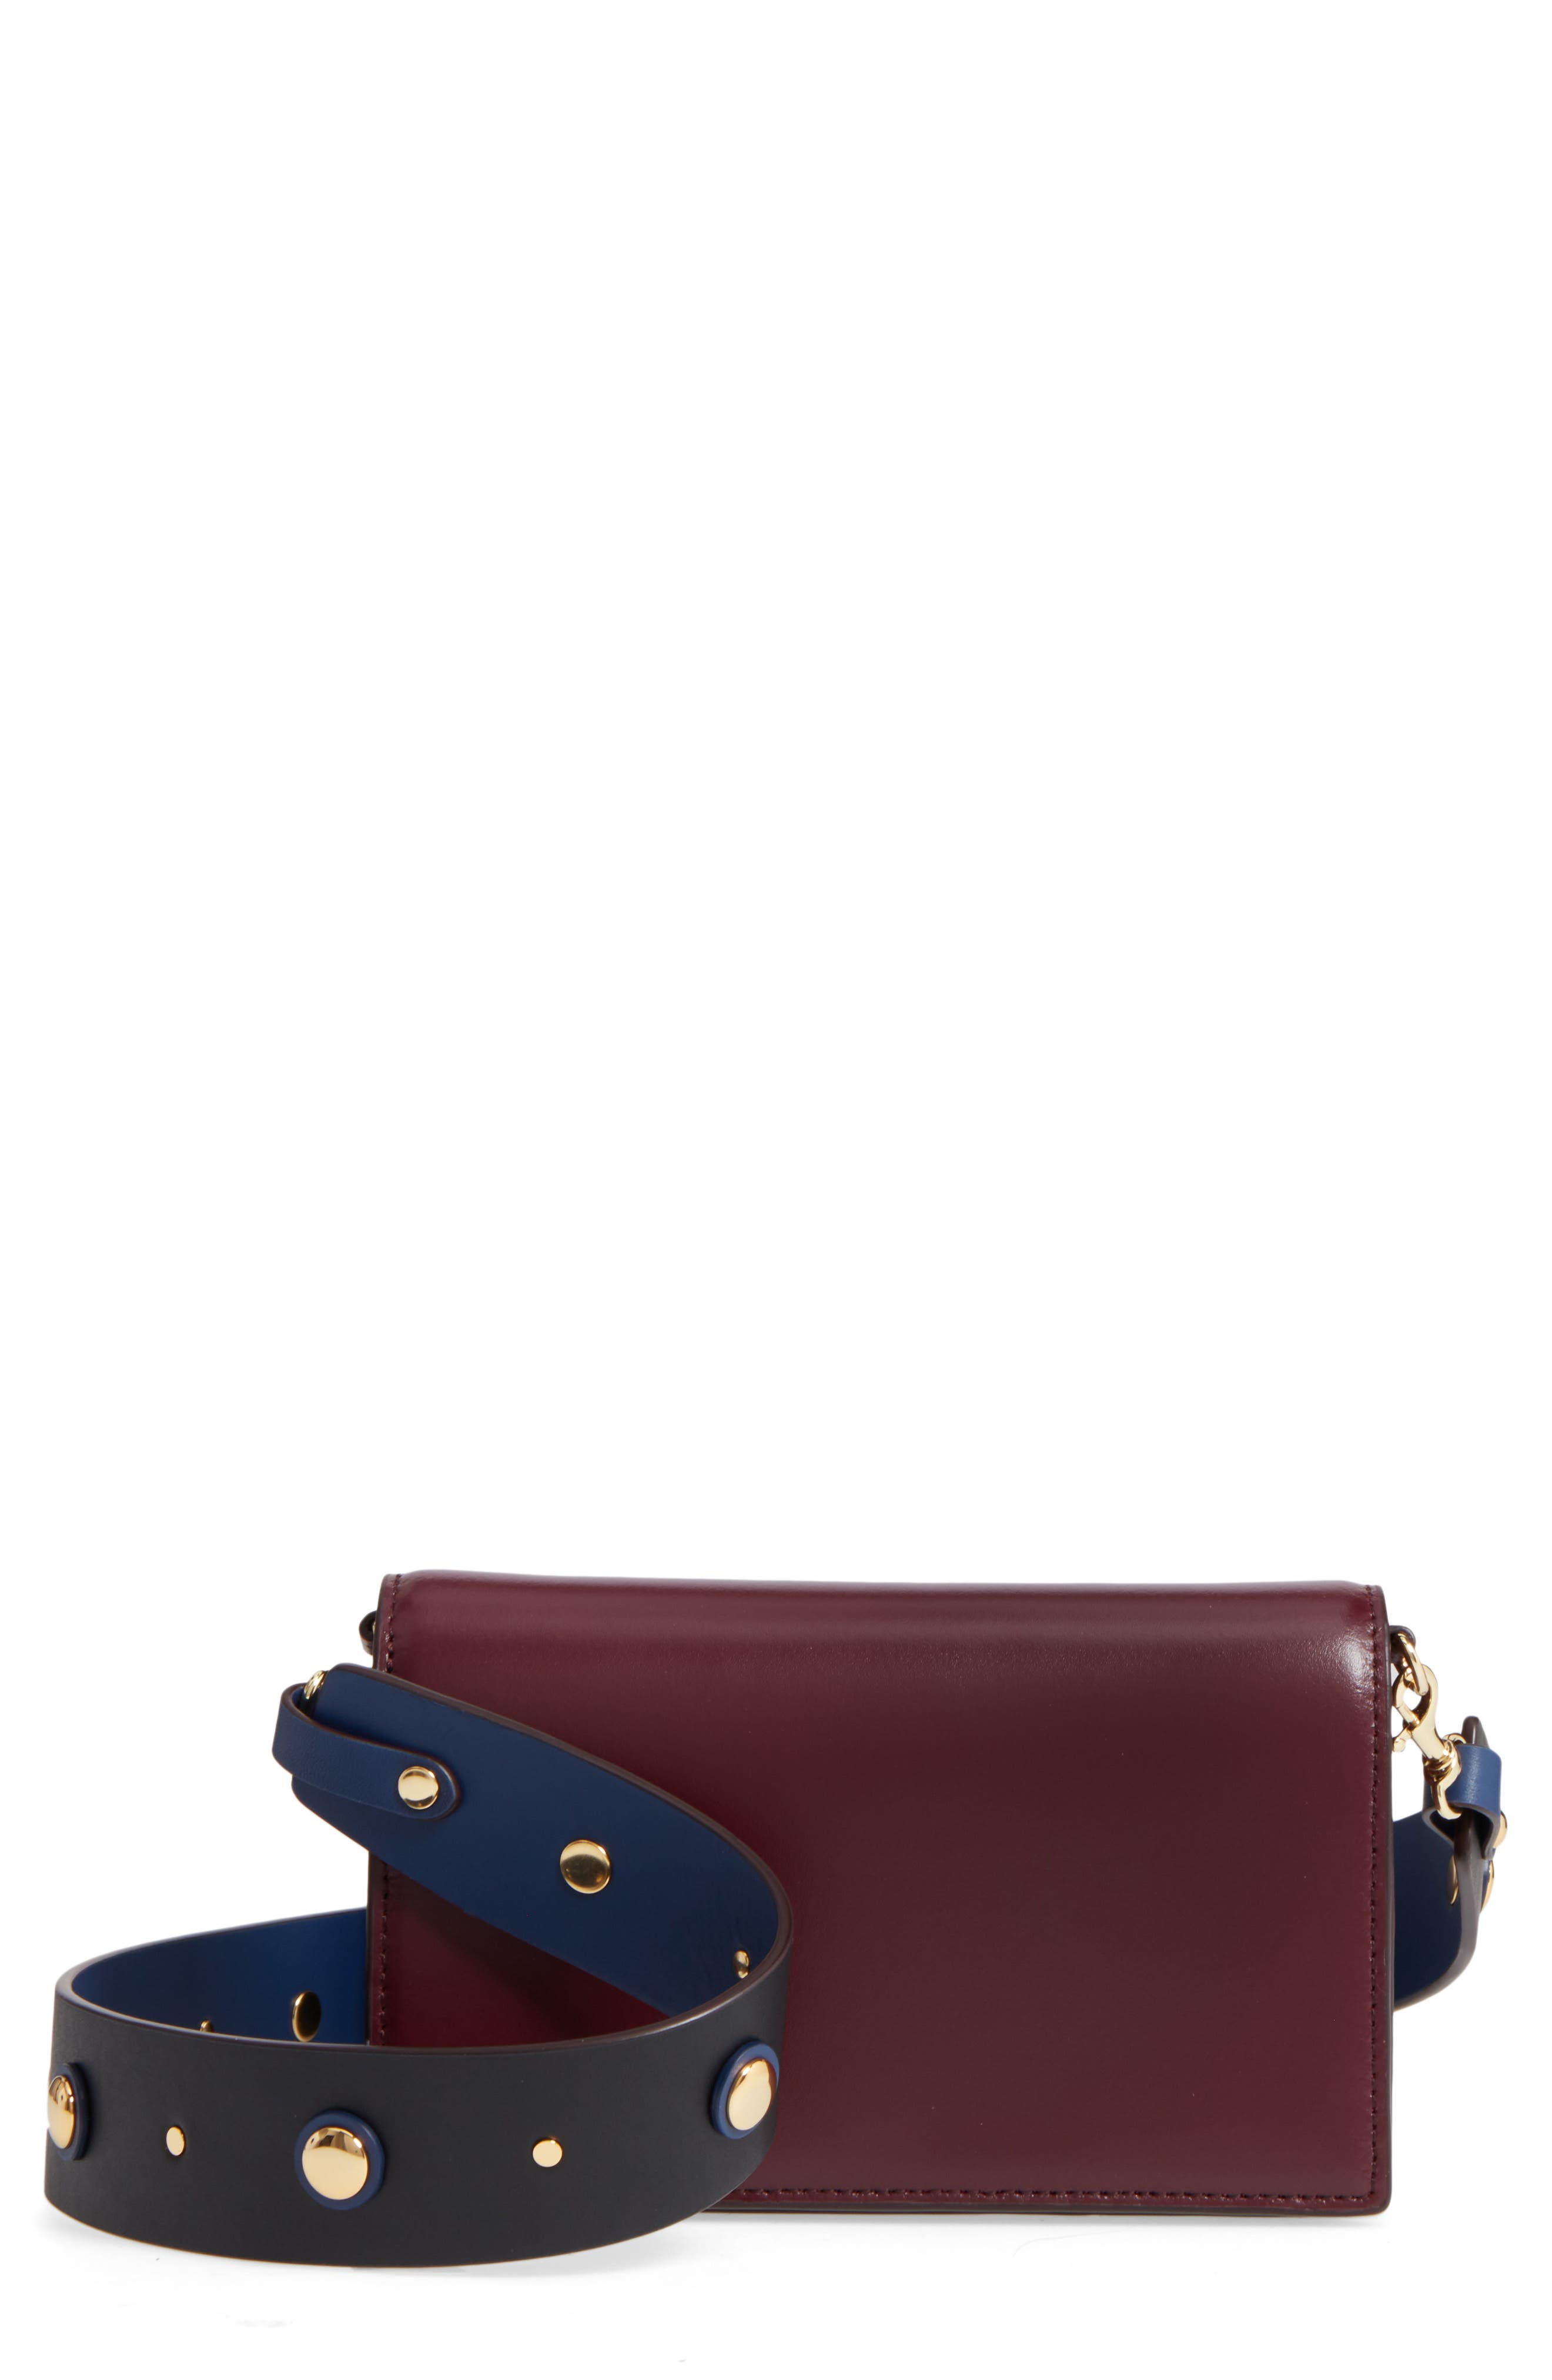 DIANE VON FURSTENBERG Soirée Leather Convertible Crossbody Bag